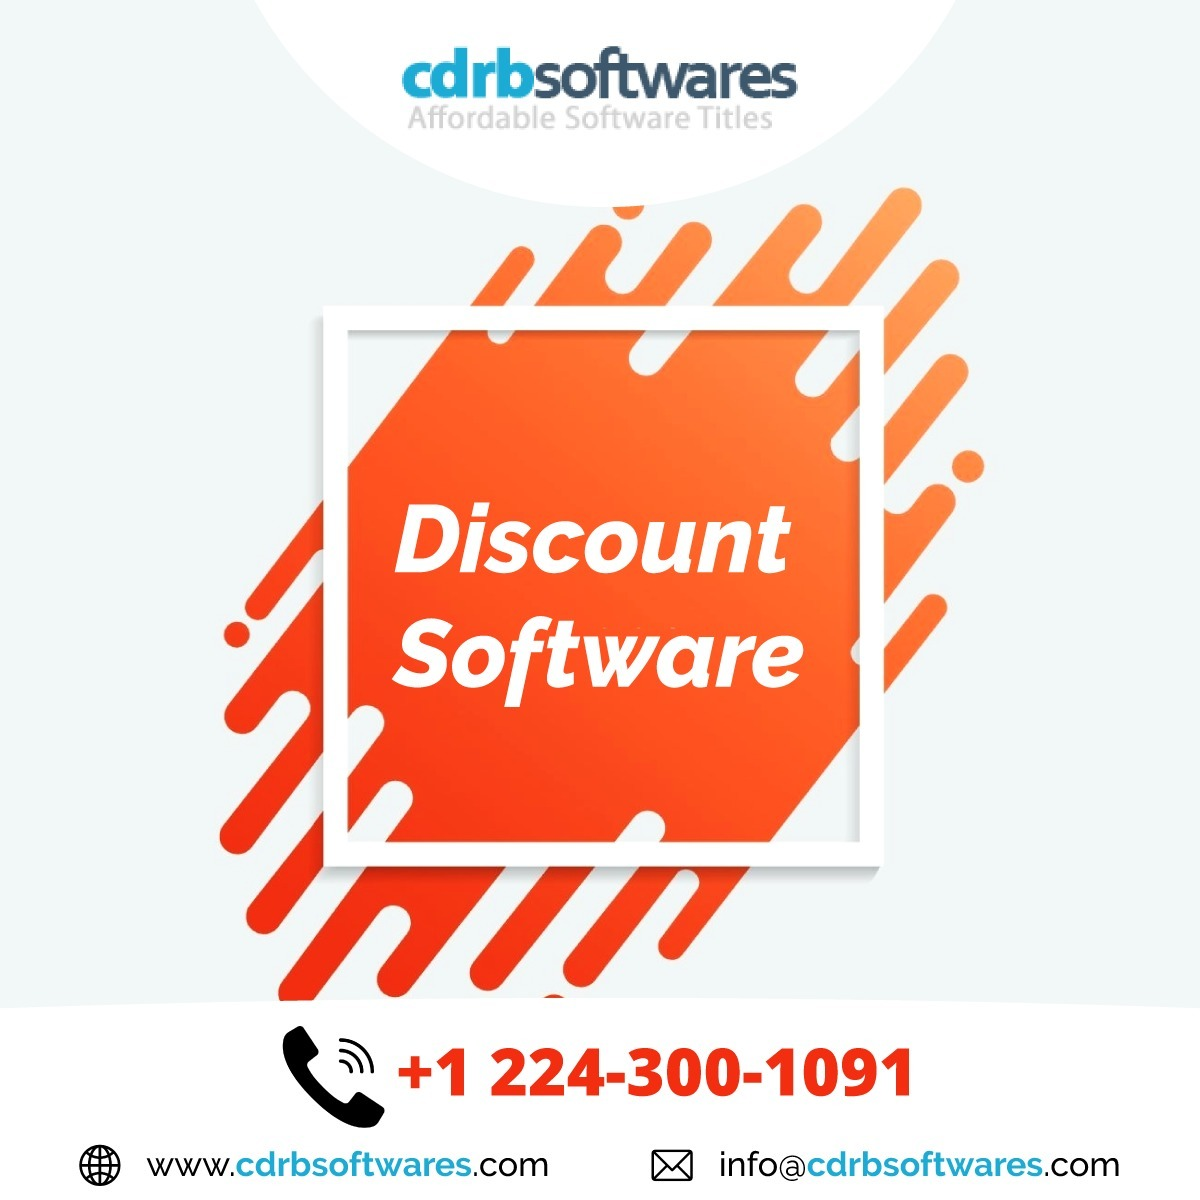 Cdrbsoftwares (@cdrbsoftwares) Cover Image